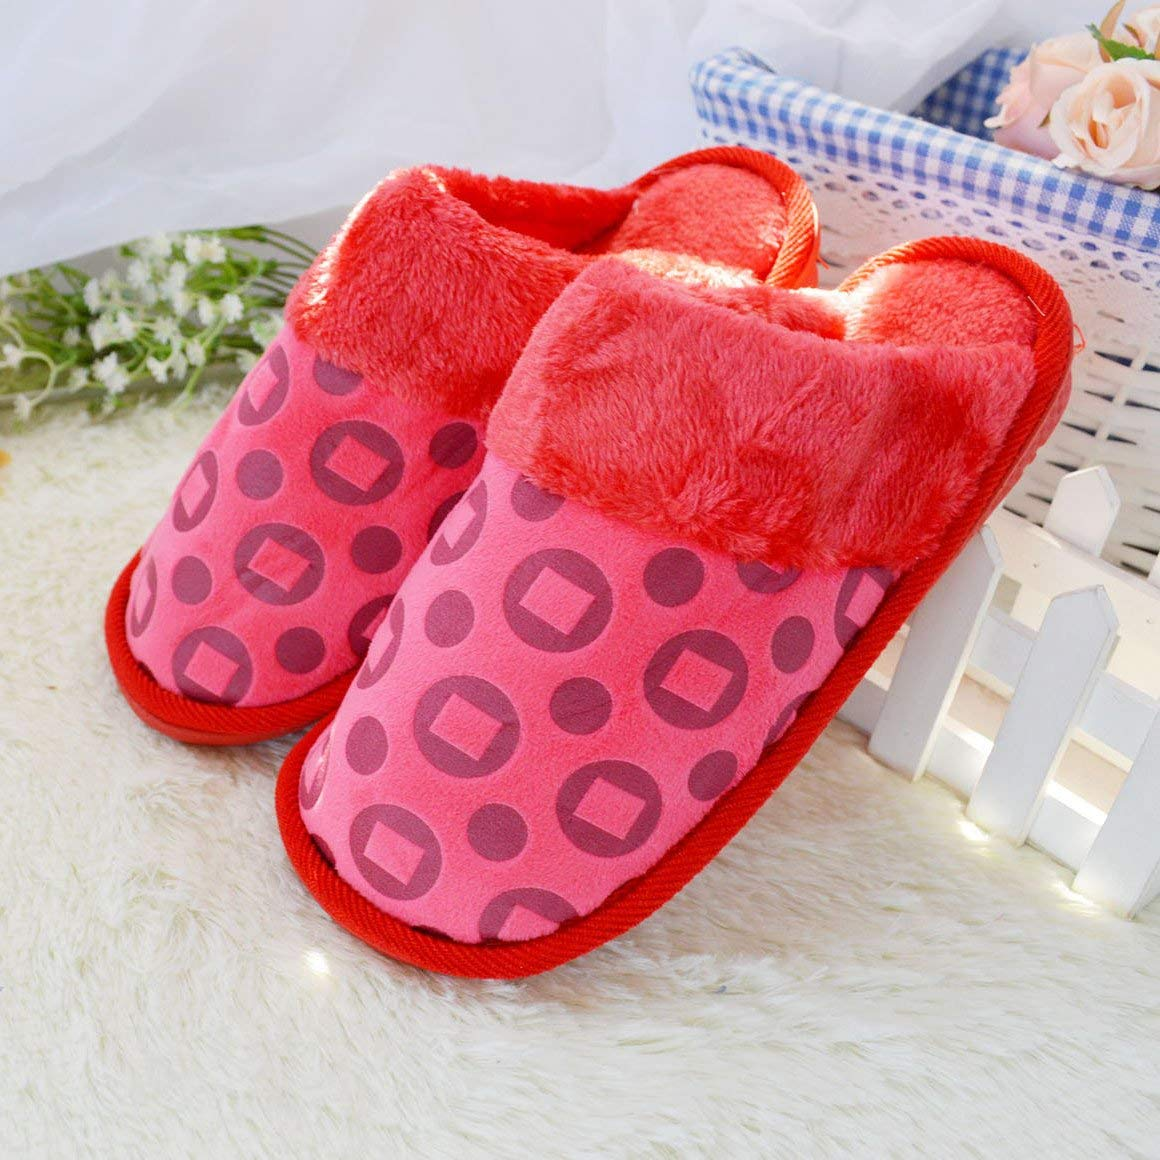 1 JaHGDU Ladies Casual Slippers Indoors to Keep Warm in Autumn and Winter Cotton Slippers Red Large Slippers for Women